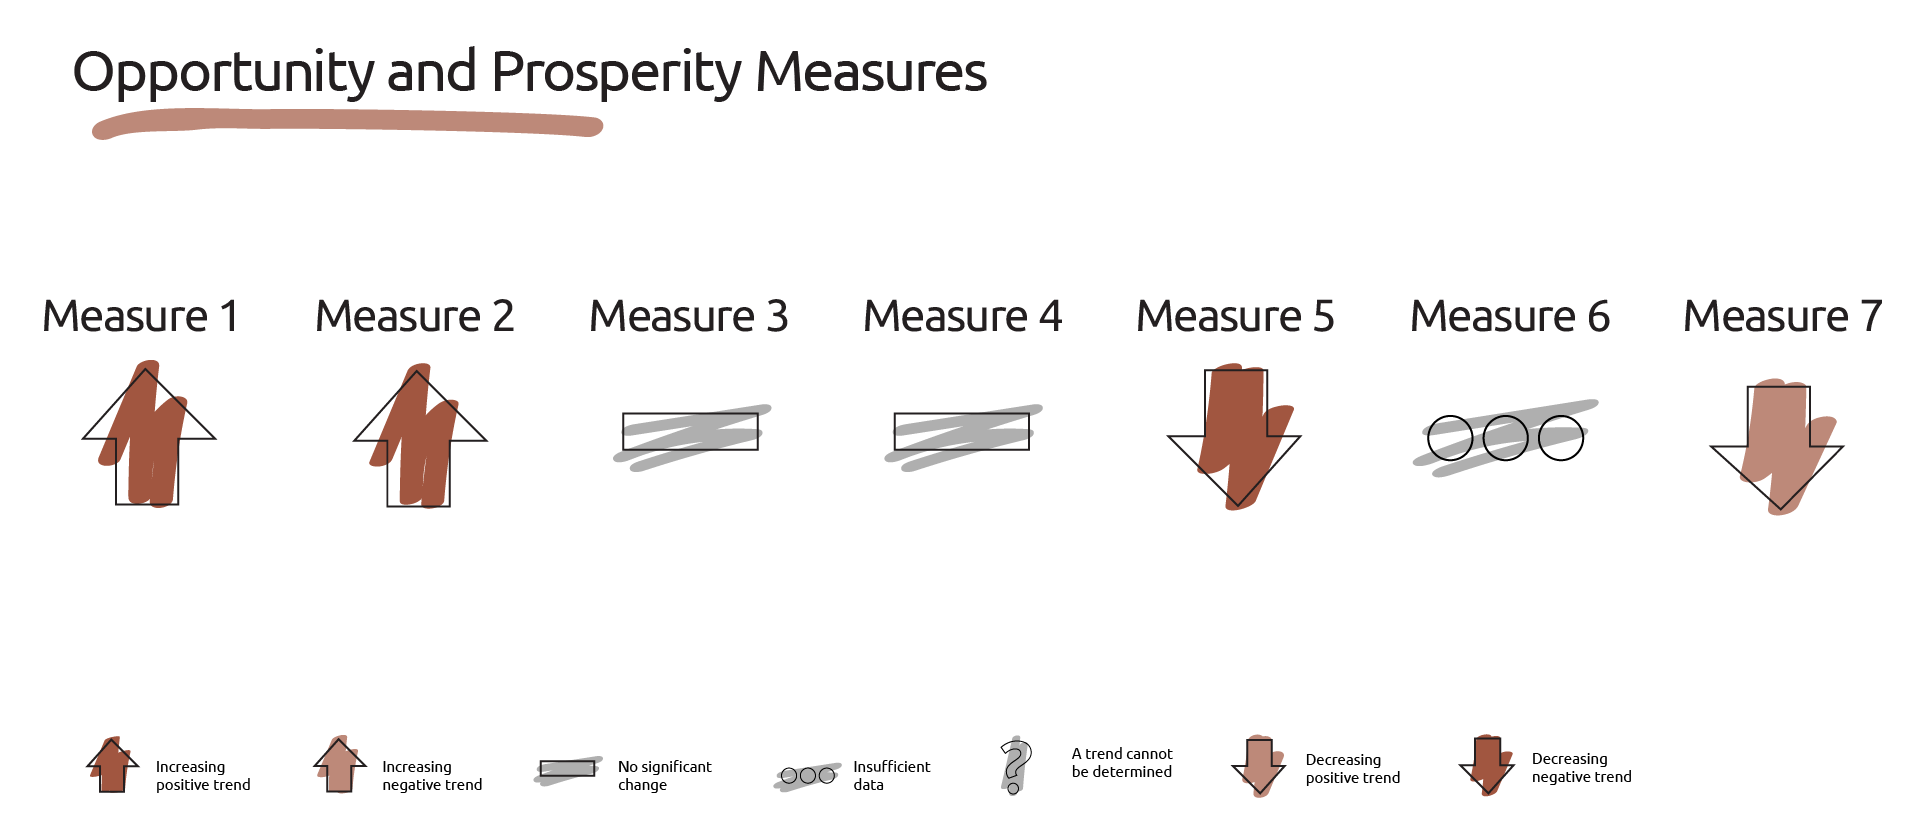 Image showing the dashboard of measures for opportunity aand prosperity.